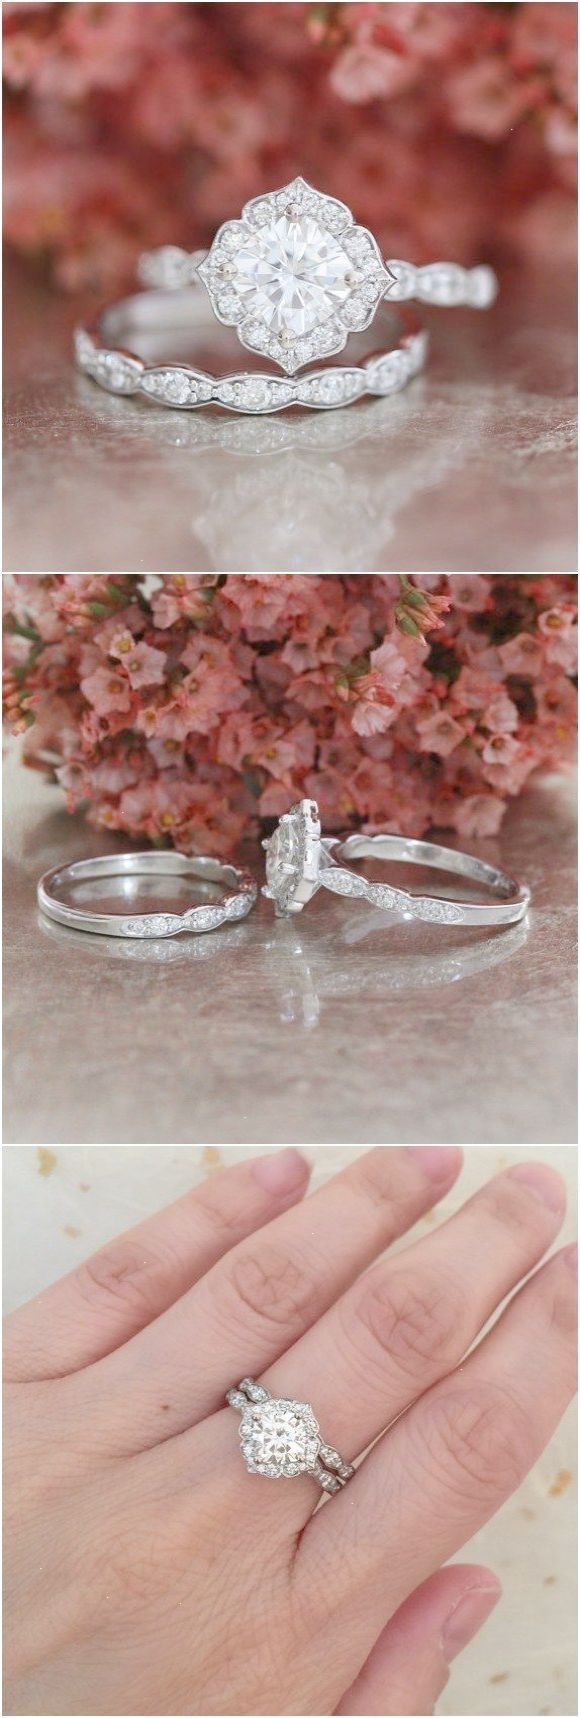 Forever one moissanite engagement ring and scalloped diamond wedding